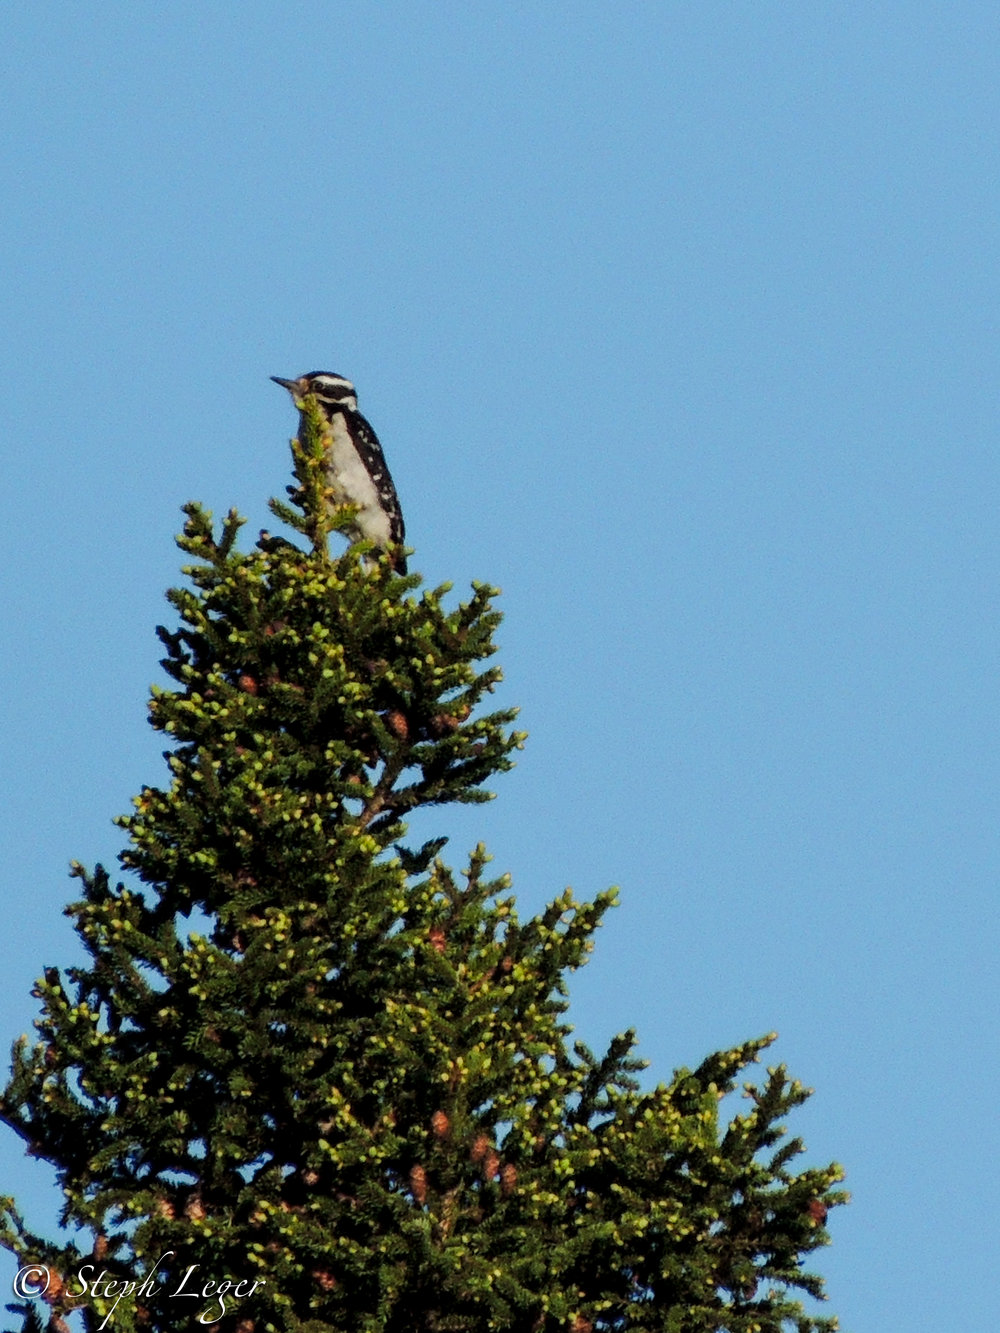 Hairy Woodpecker (Leuconotopicus villosus) female - Terra Nova National Park, Newfoundland